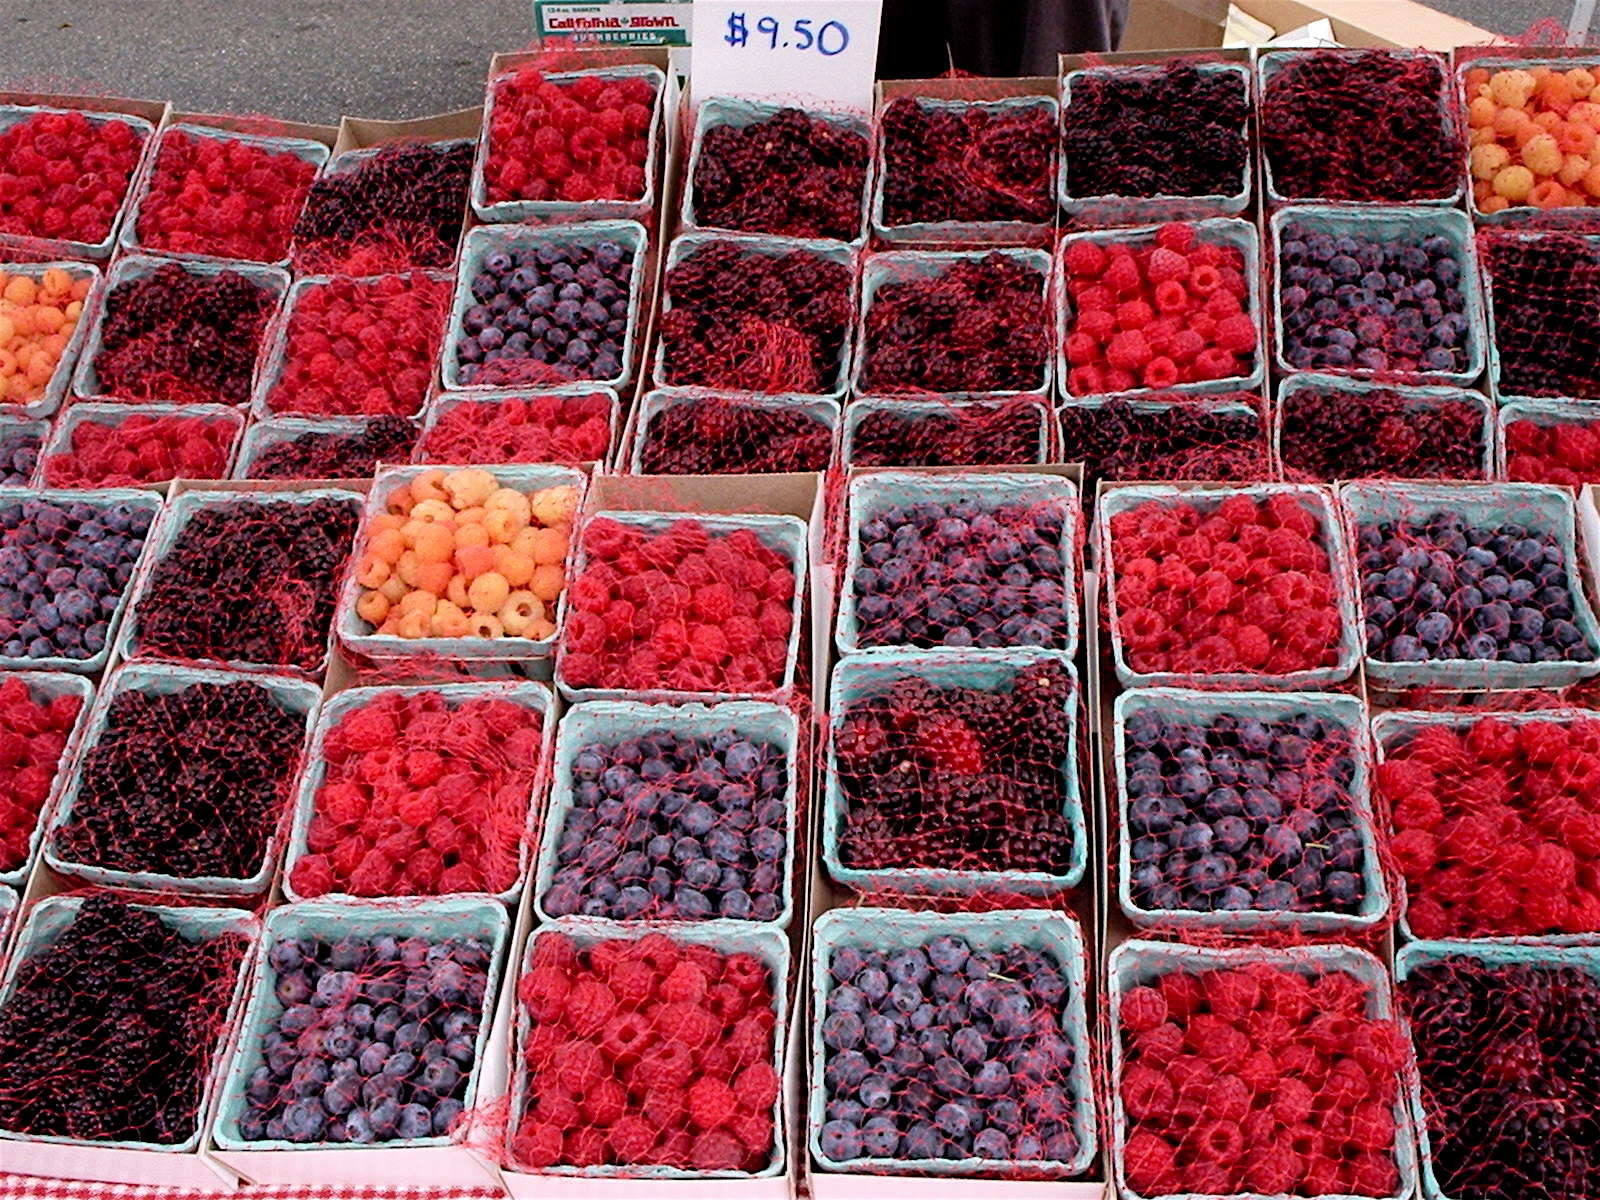 http://upload.wikimedia.org/wikipedia/commons/a/ac/Berries.jpg